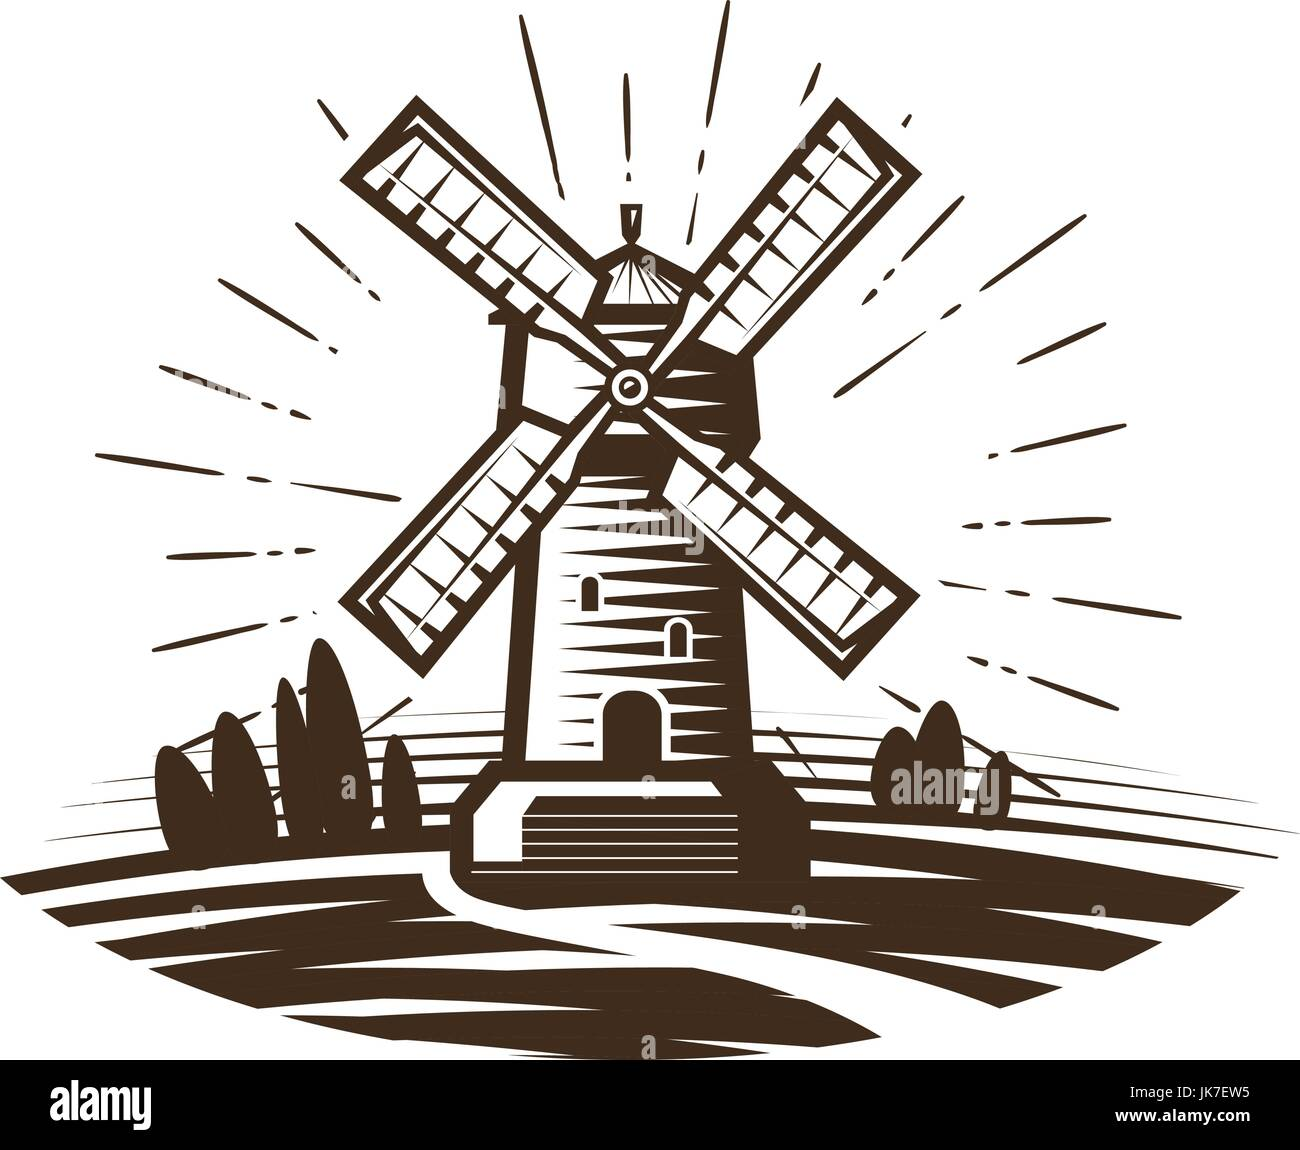 Windmill, mill logo or label. Farm, agriculture, bakery, bread icon. Vintage vector illustration - Stock Vector